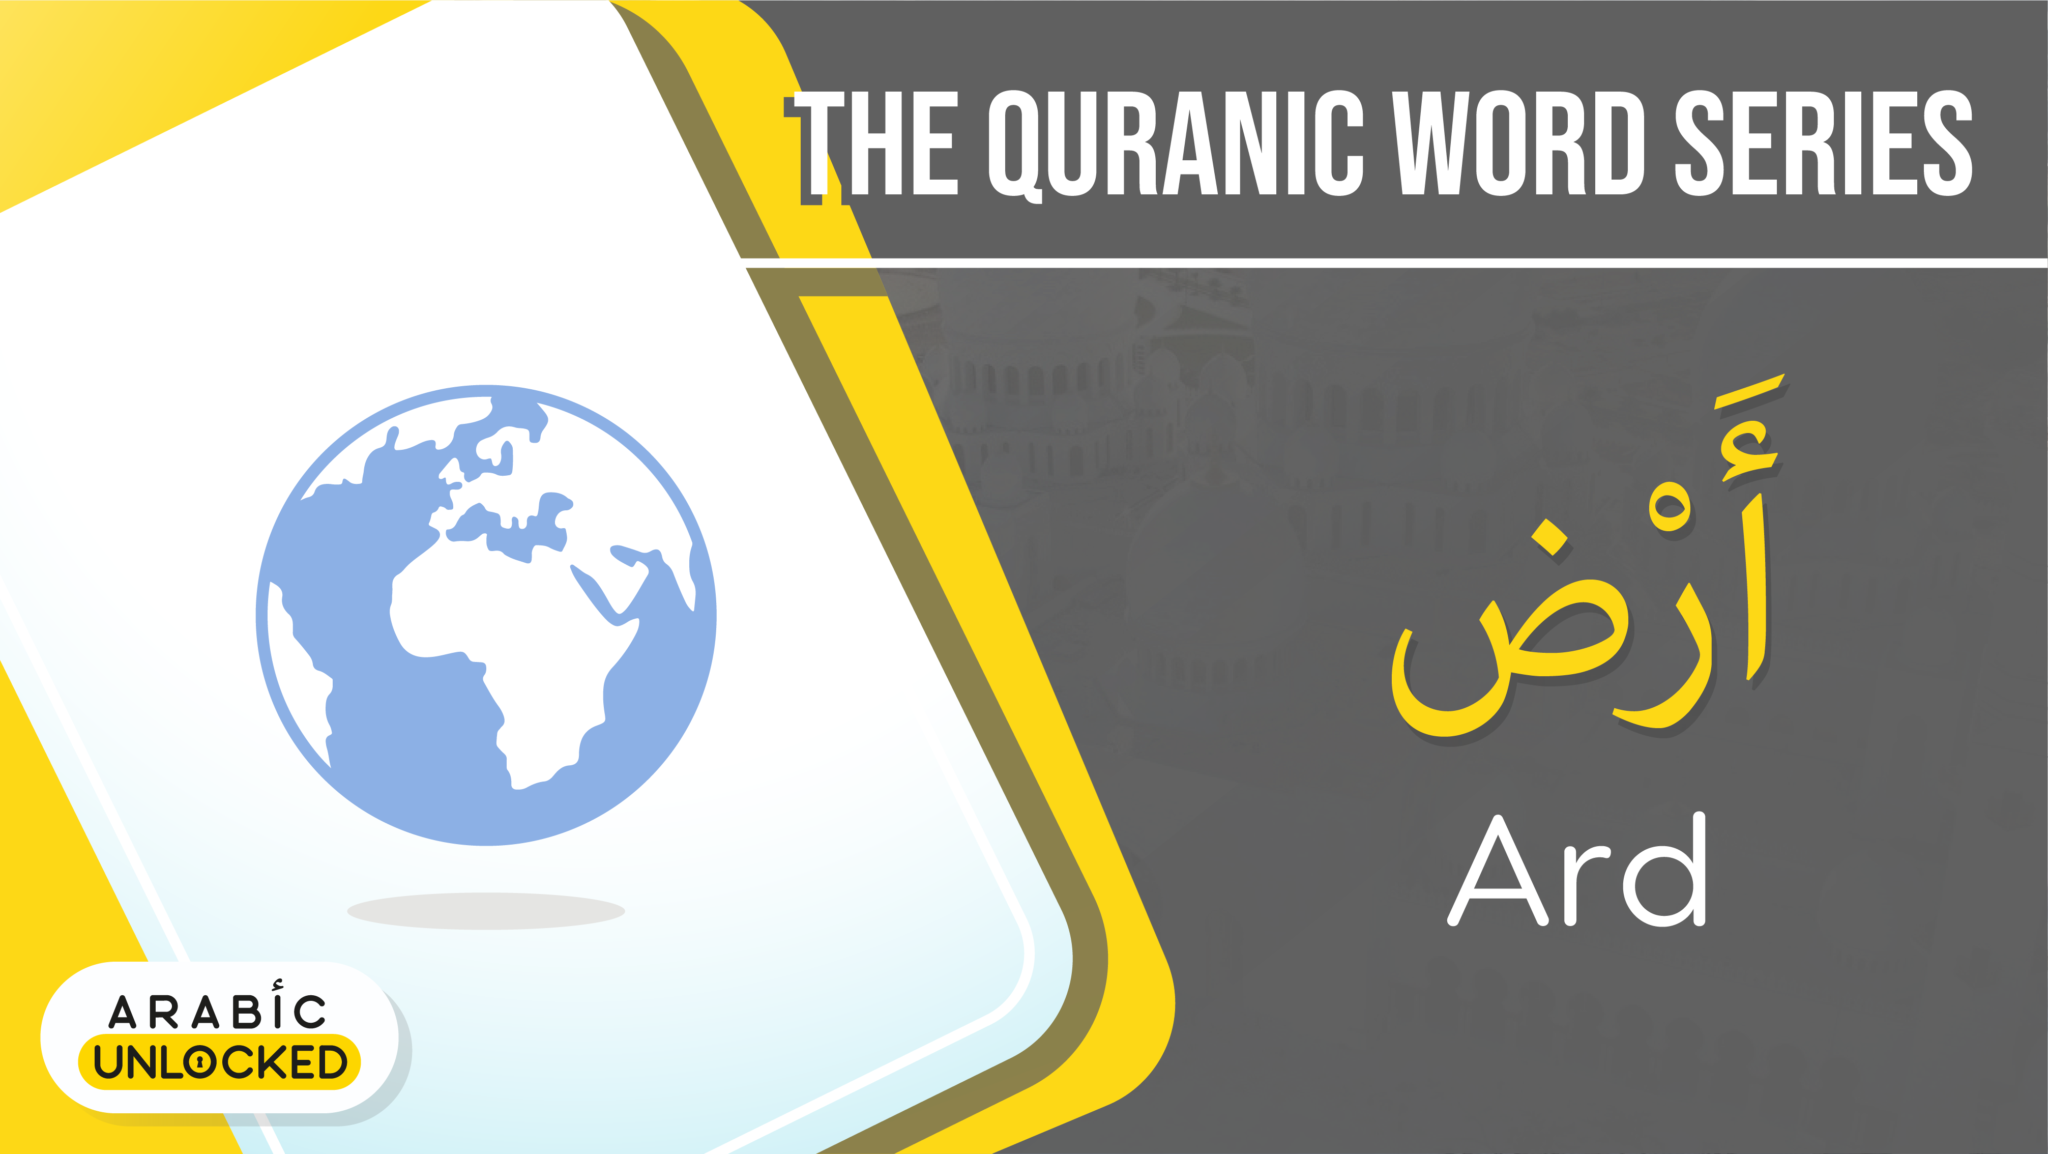 The Quranic Word Series: Ard